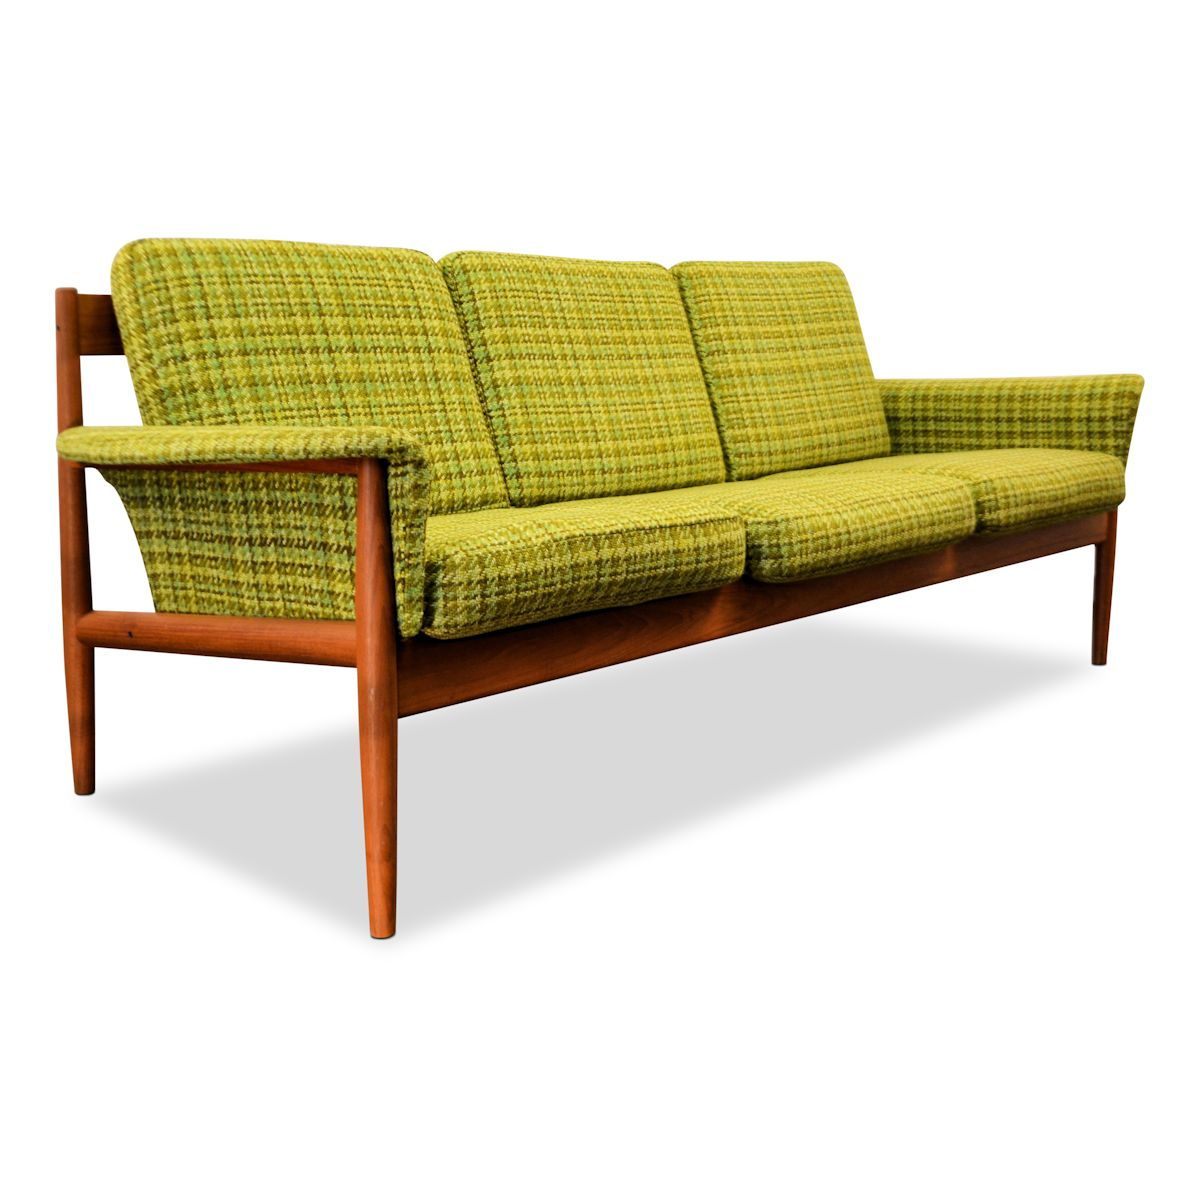 Retro Bank Deens Design.Vintage Three Seater Sofa By Grete Jalk Vintage Vibes